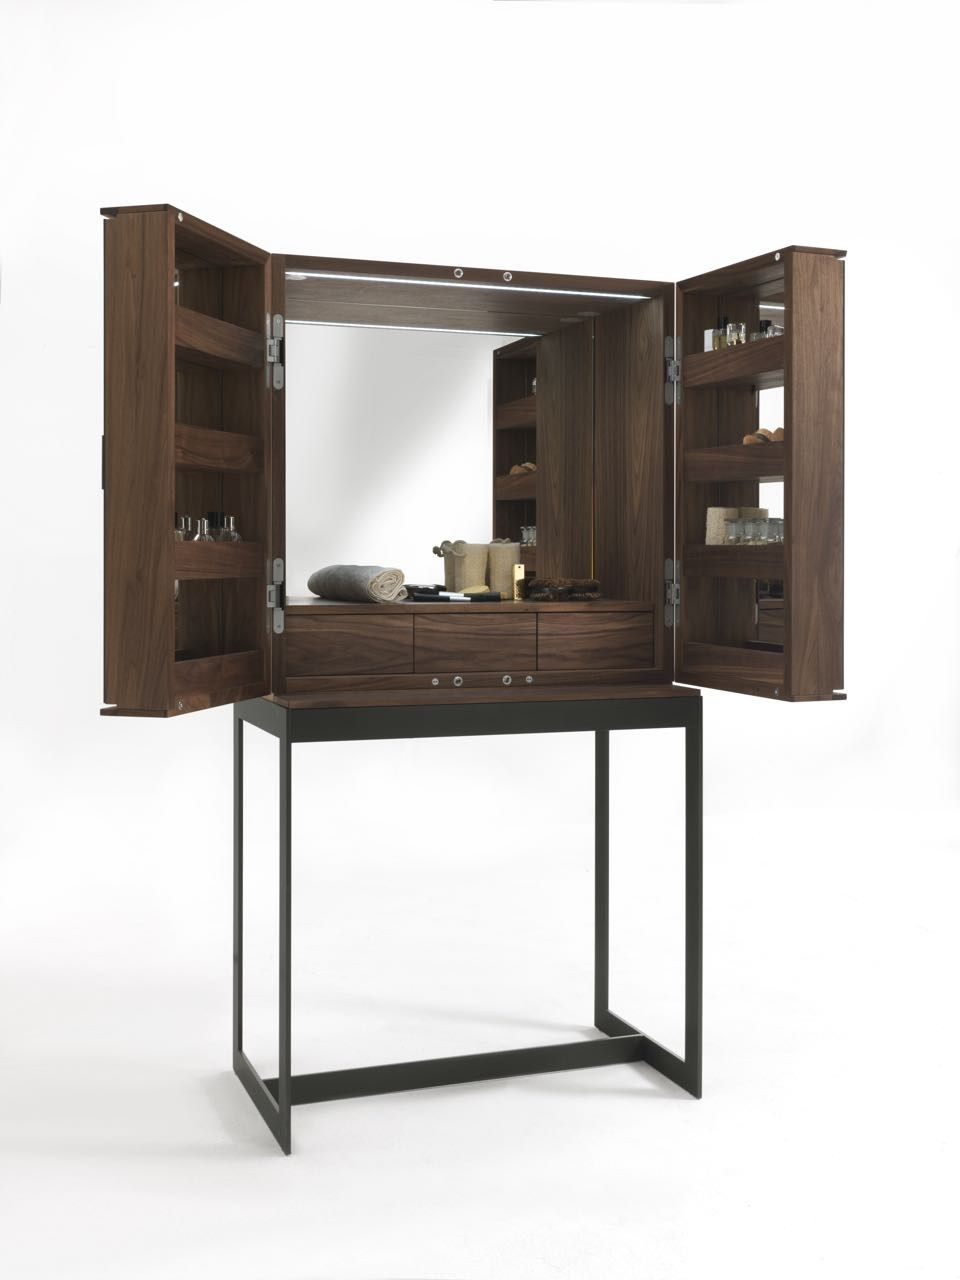 Dressing tables with mirrors reflect the beauty of the d cor for Vanity dressing table